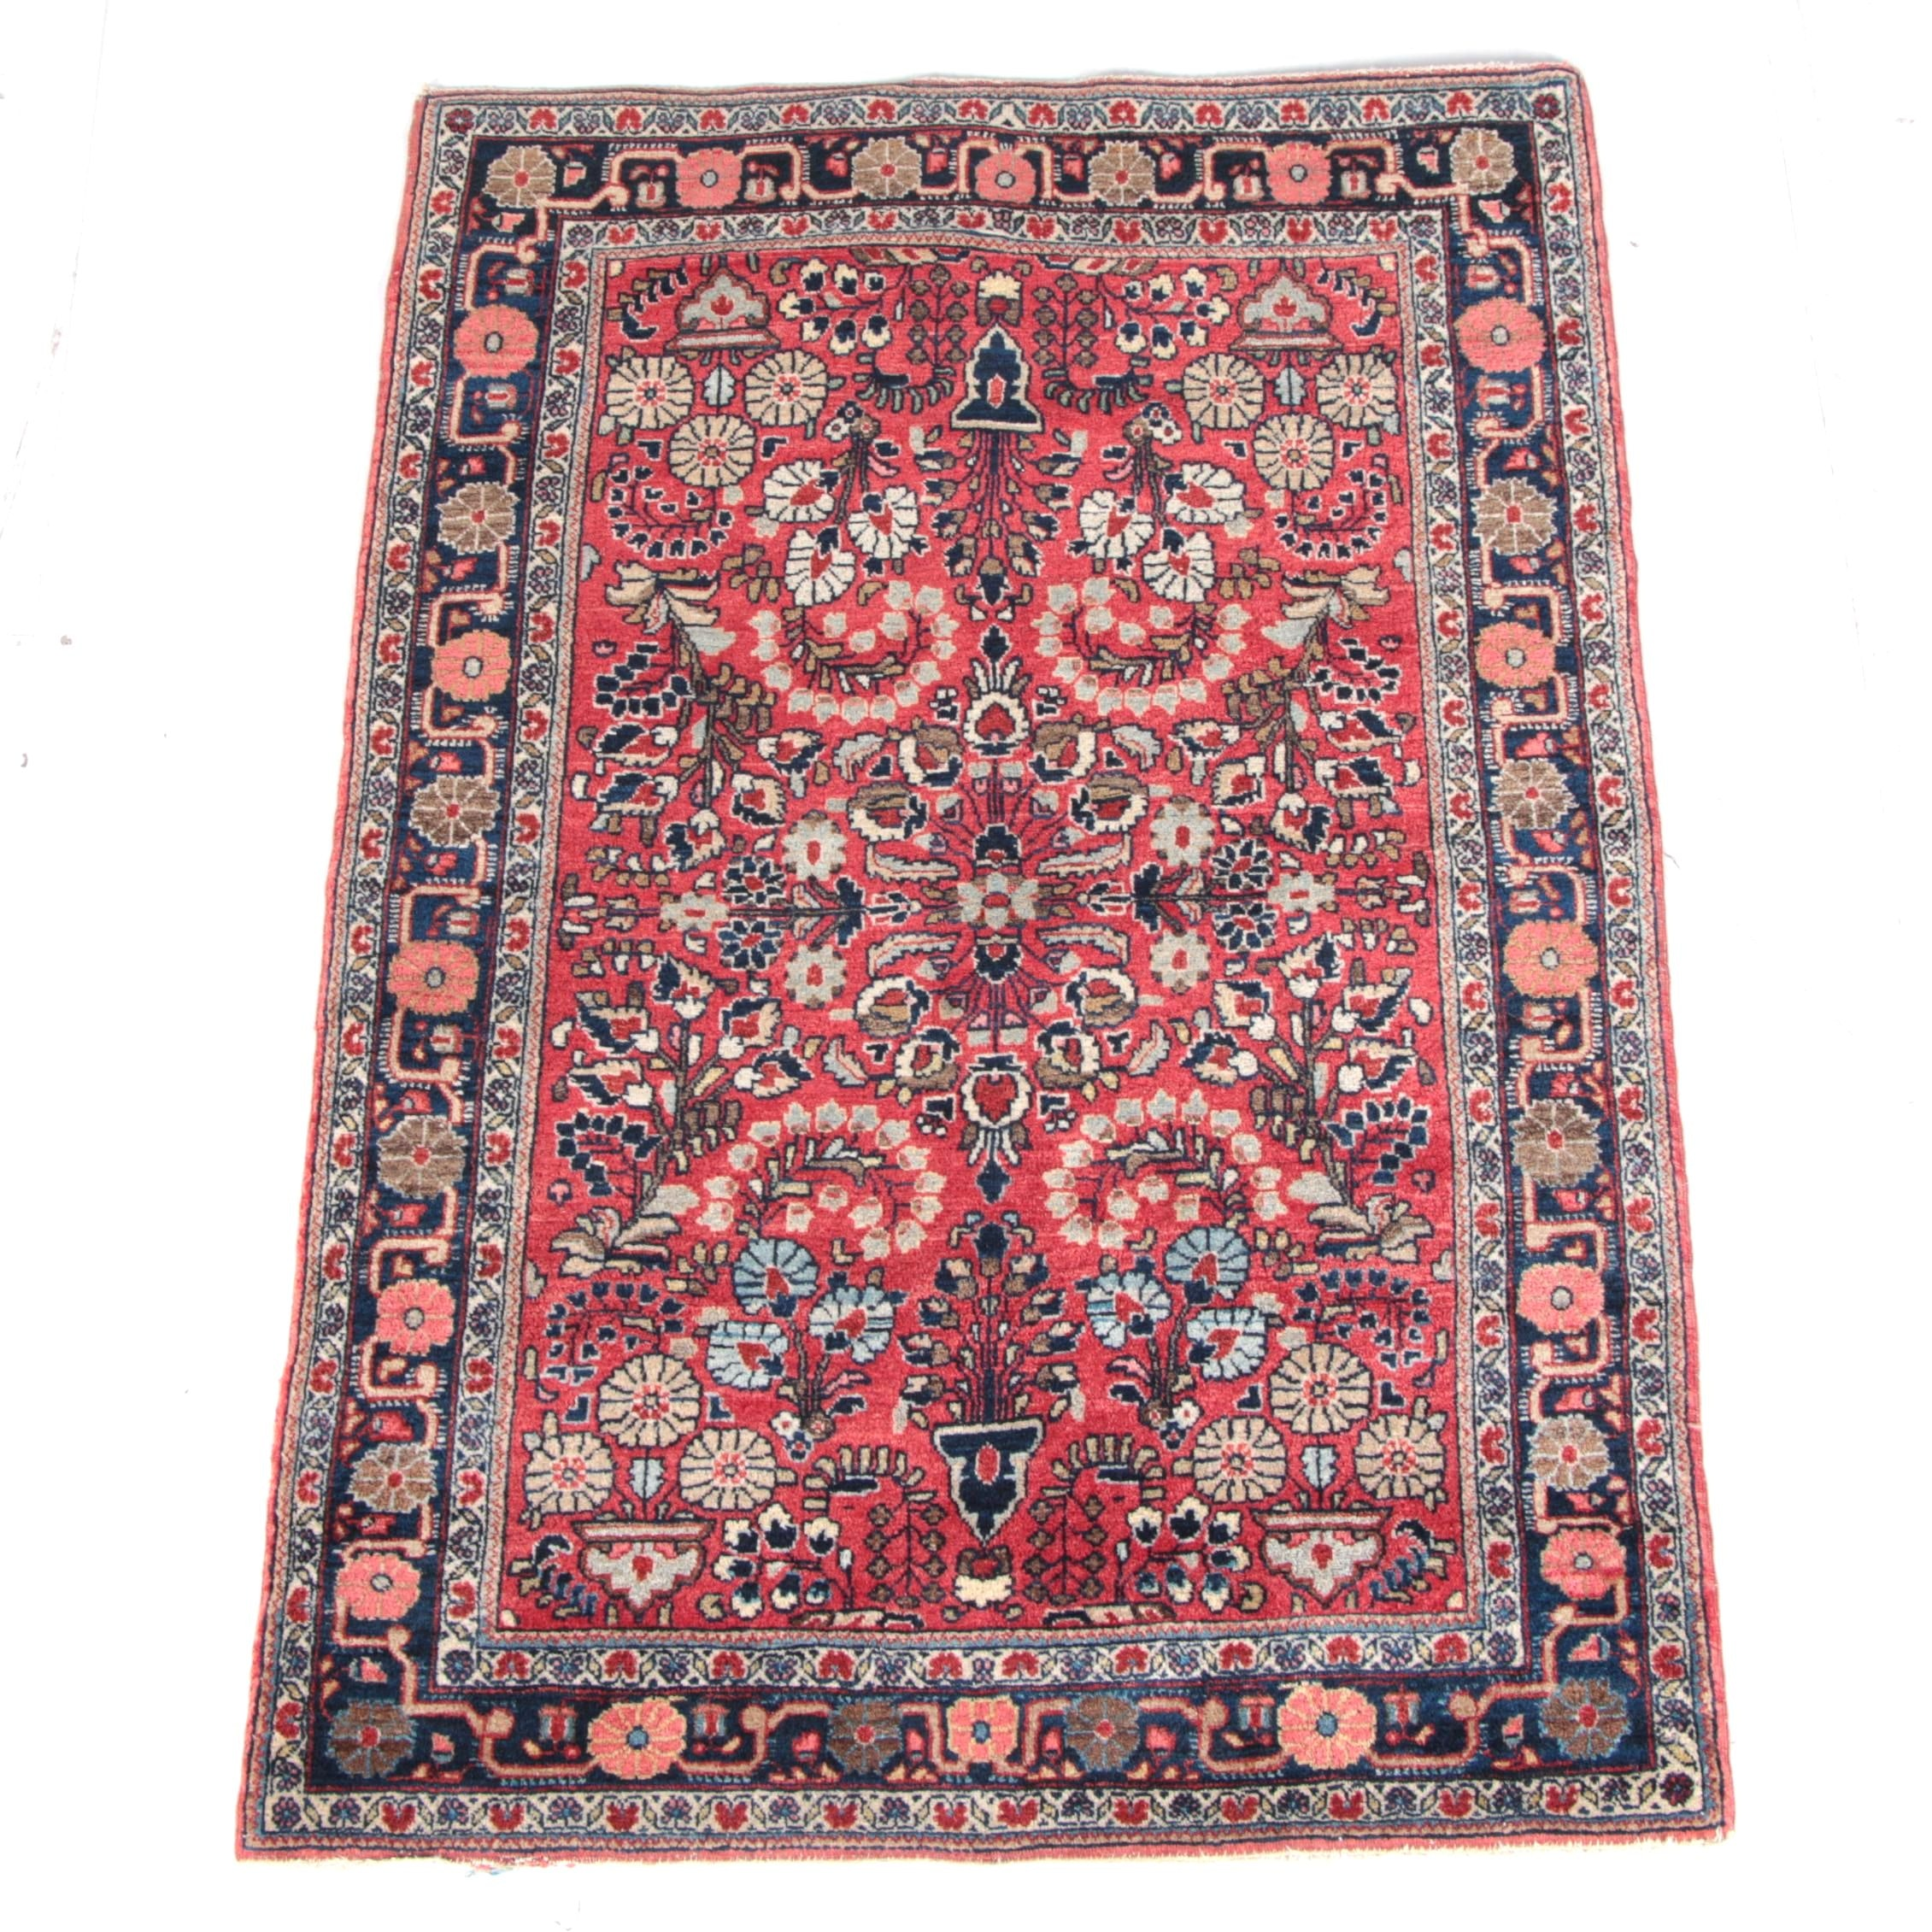 Semi-Antique Hand-Knotted Persian Sarouk Area Rug